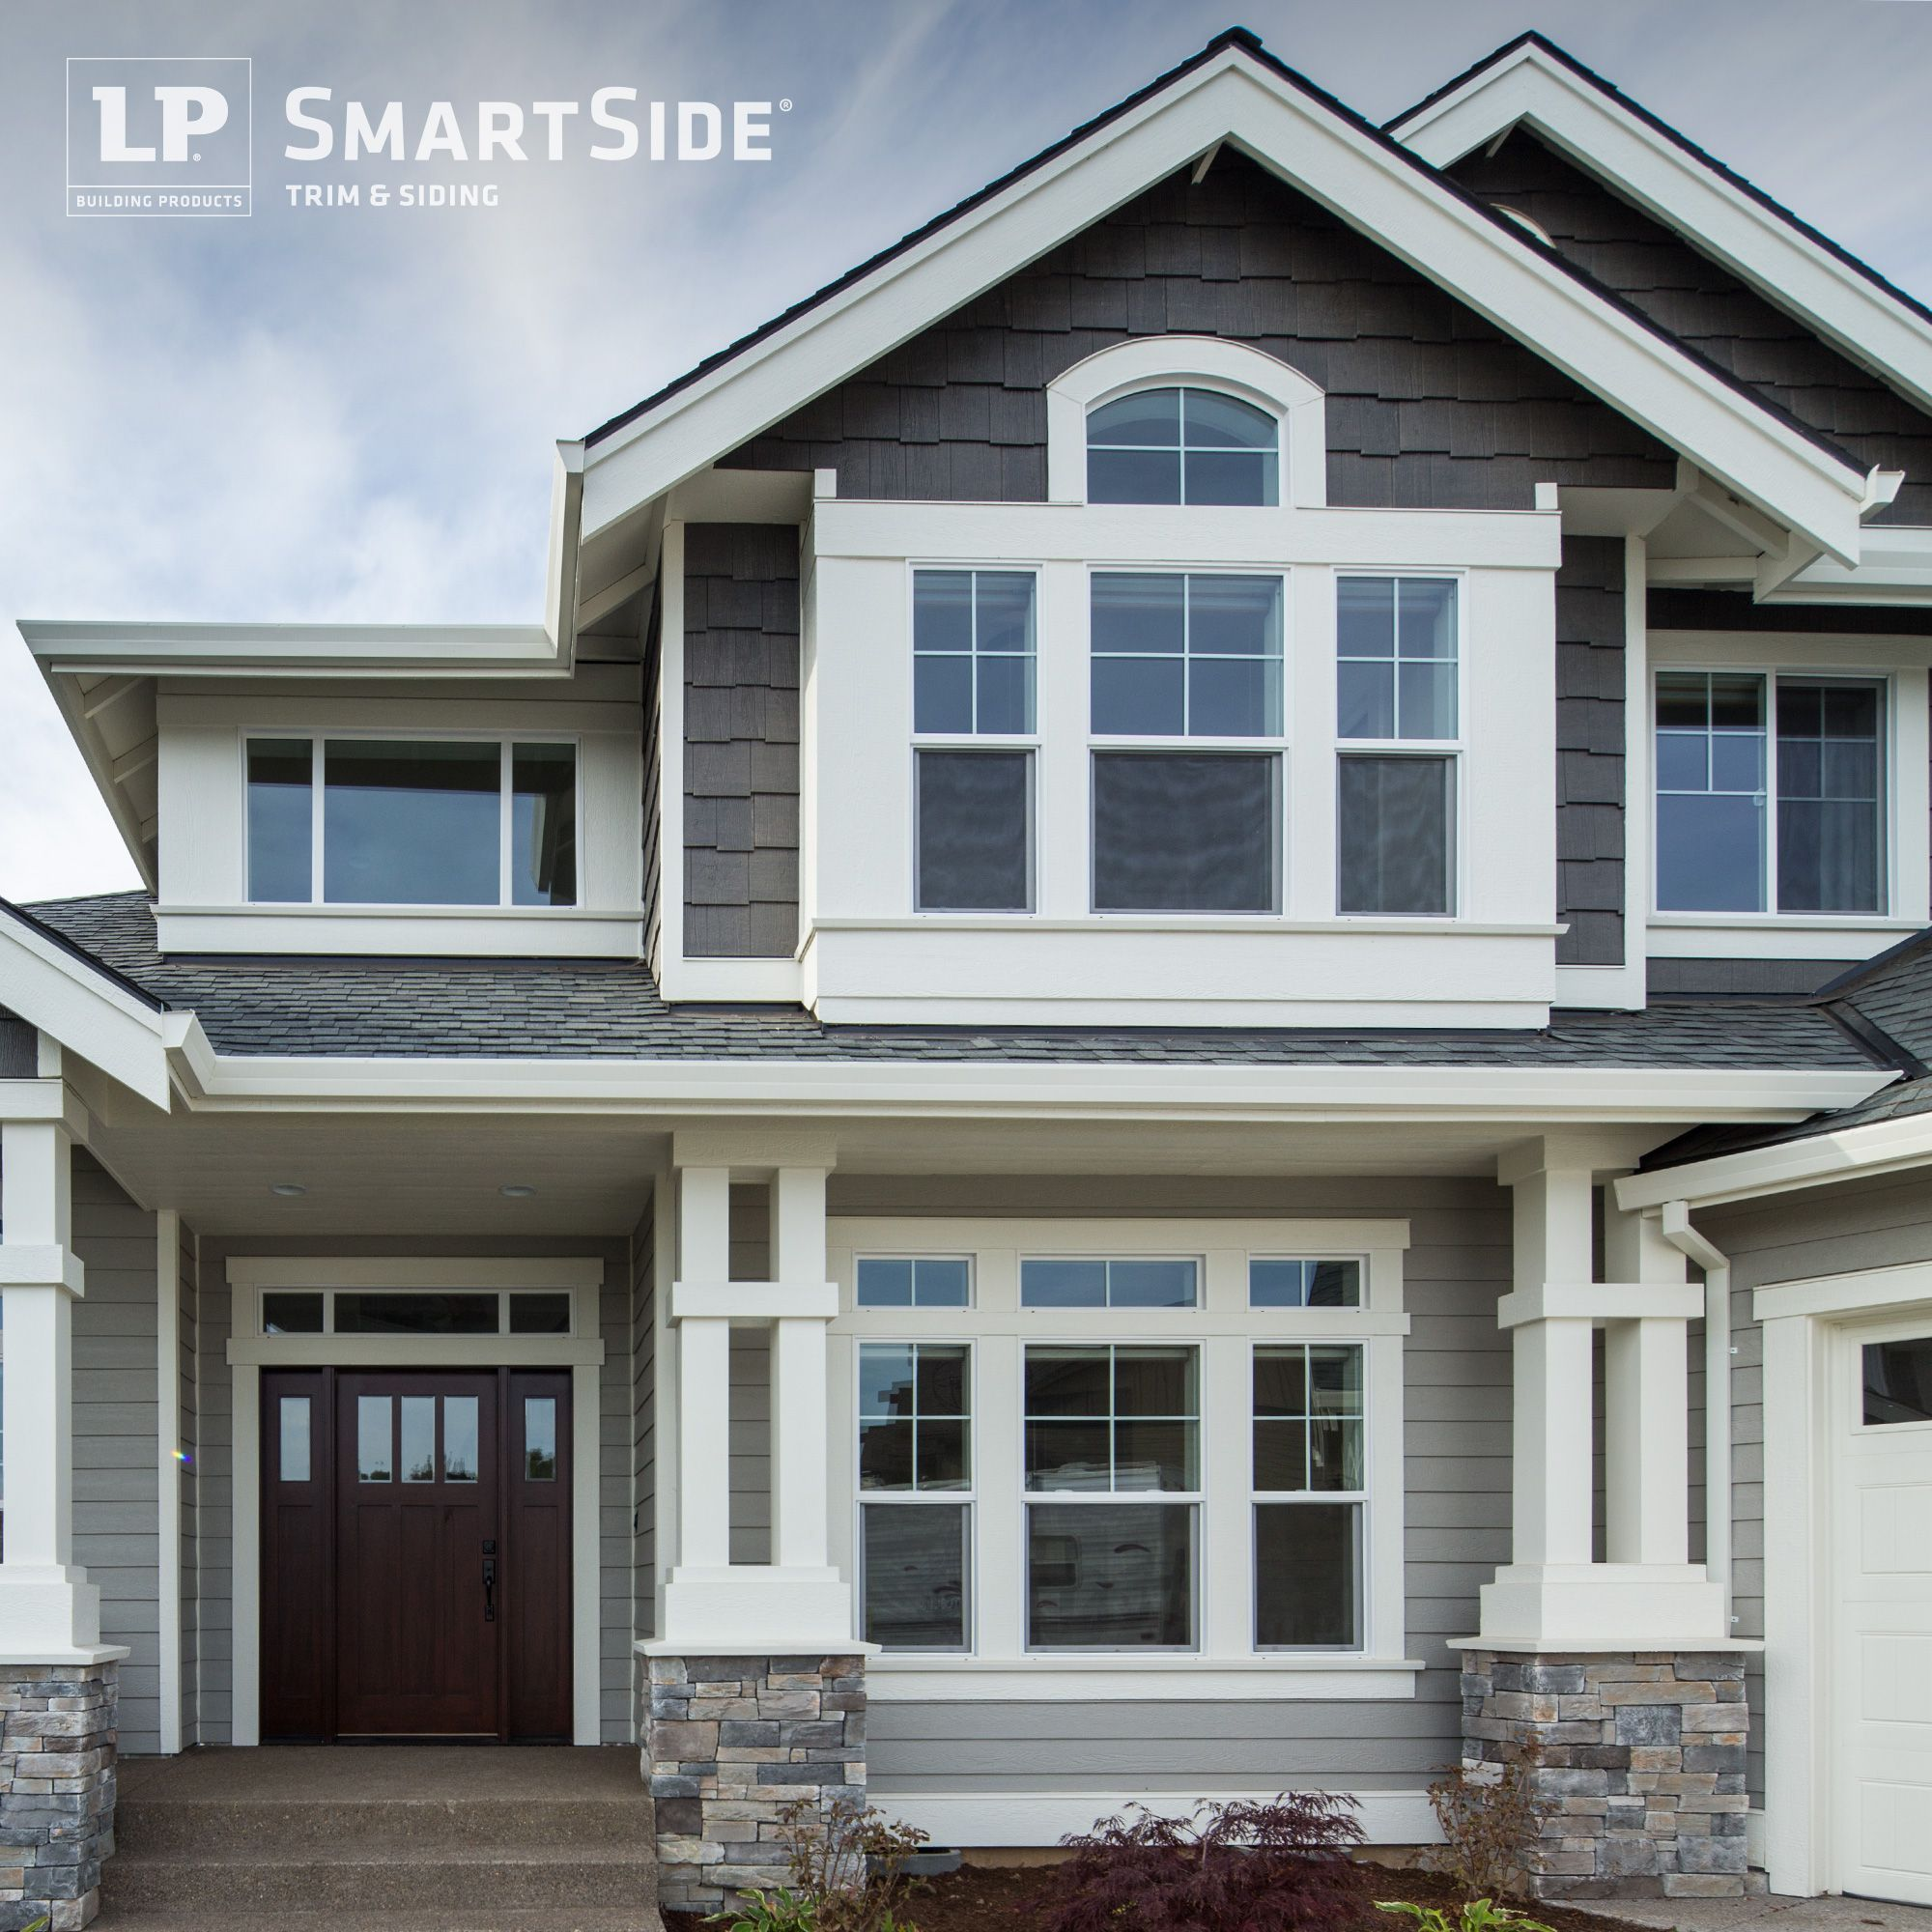 lp smartside siding is one option for exterior design lp on benjamin moore exterior paint visualizer id=27364